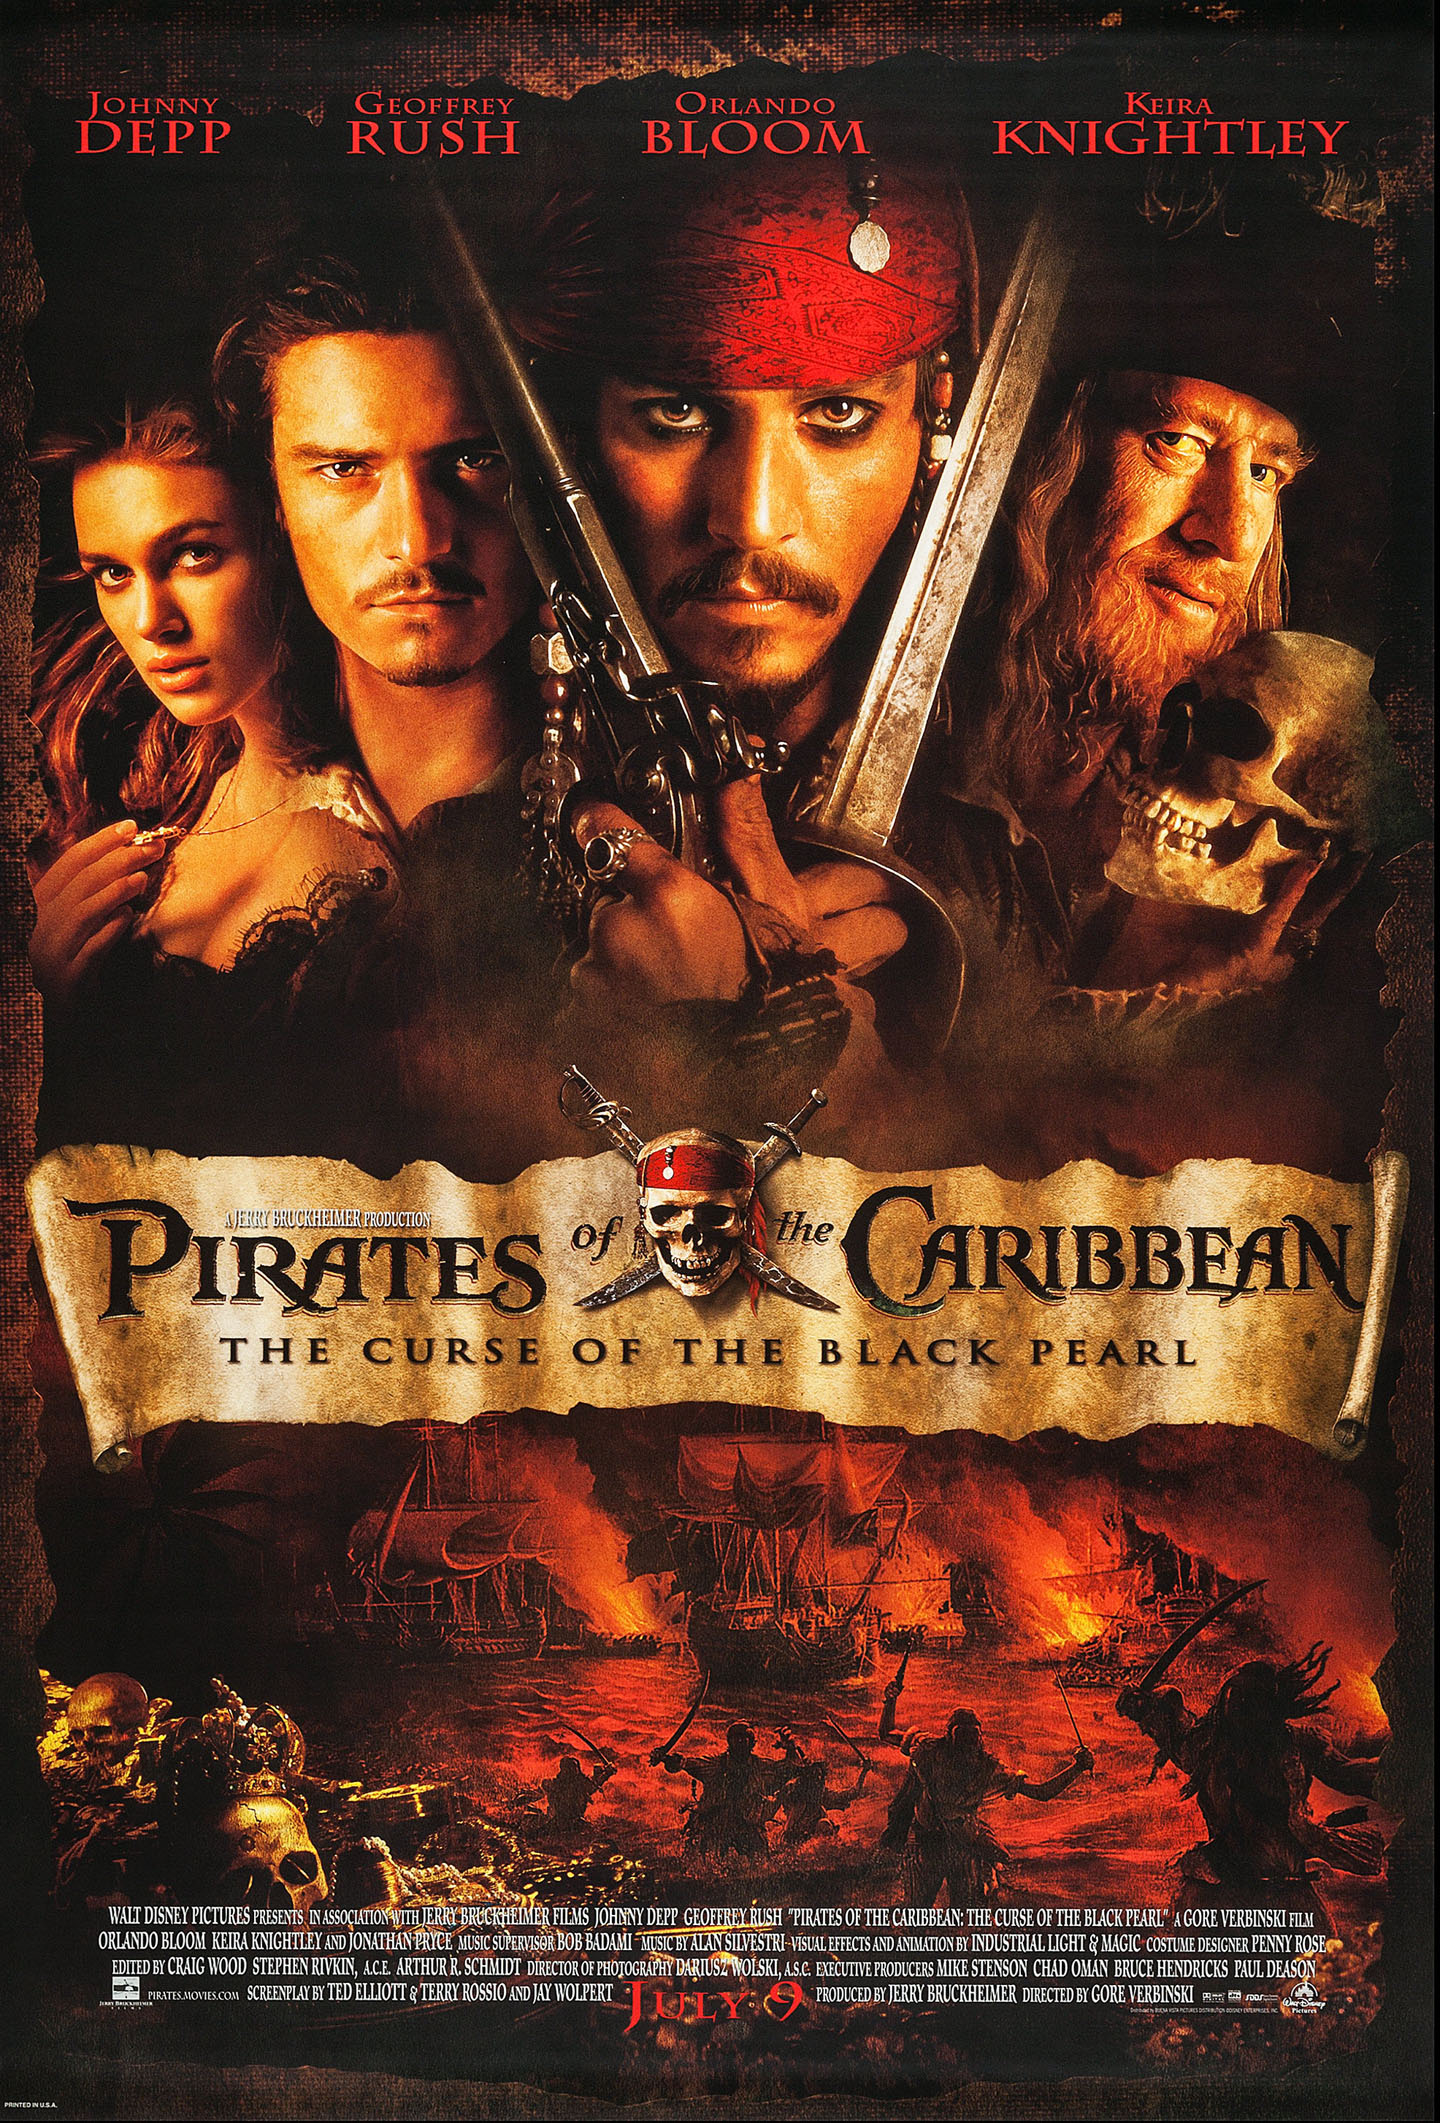 PIRATES OF THE CARIBBEAN: The Curse of the Black Pearl @ FilmPosters.com